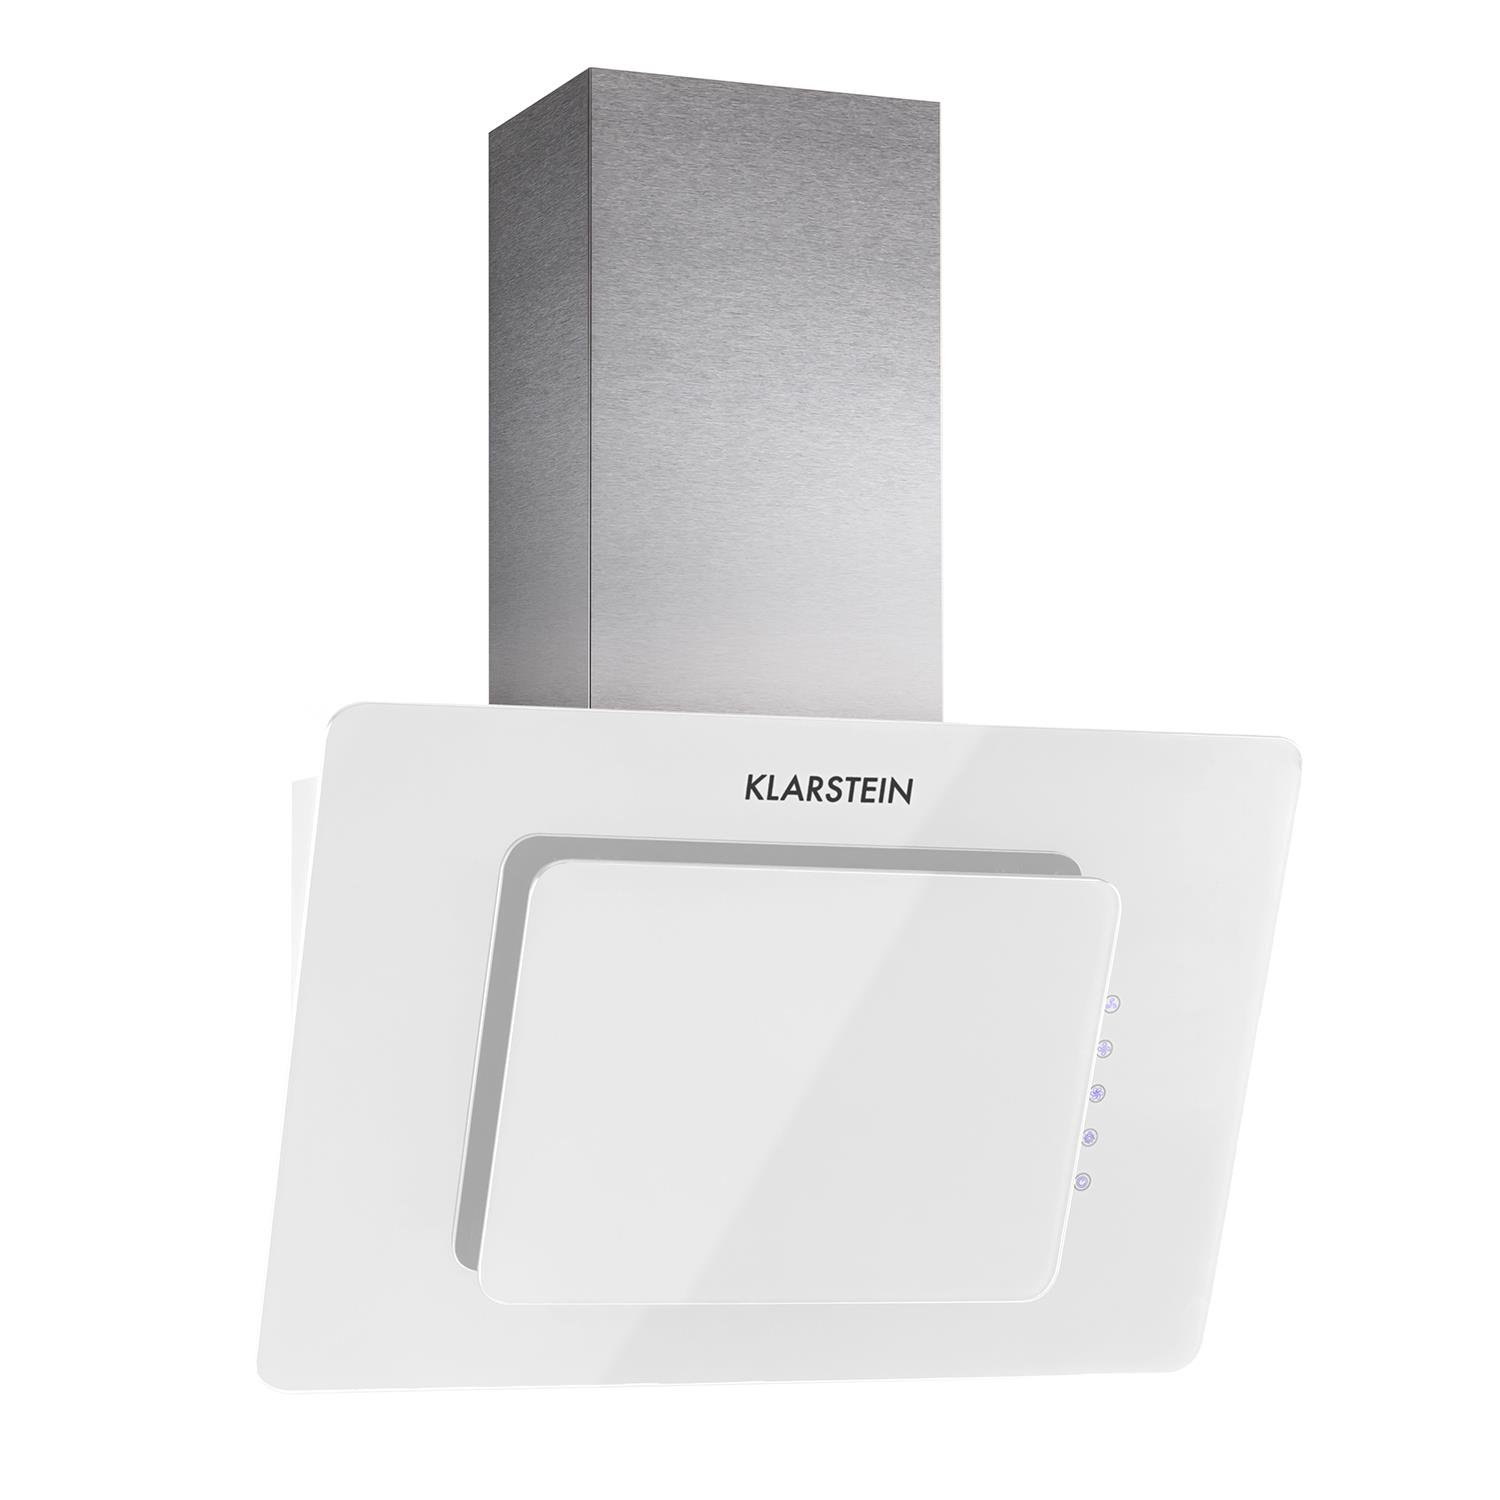 Klarstein Lorea Extractor Cooker Hood • 60 cm • 270 m3/h Maximum Extraction Power • Touch Panel • Black Hardened Safety Glass • Contrasting Ventilation Flap for Head-Free Work • Extremely Low Operating Noise • 3 Power Levels • Black 4260489829493